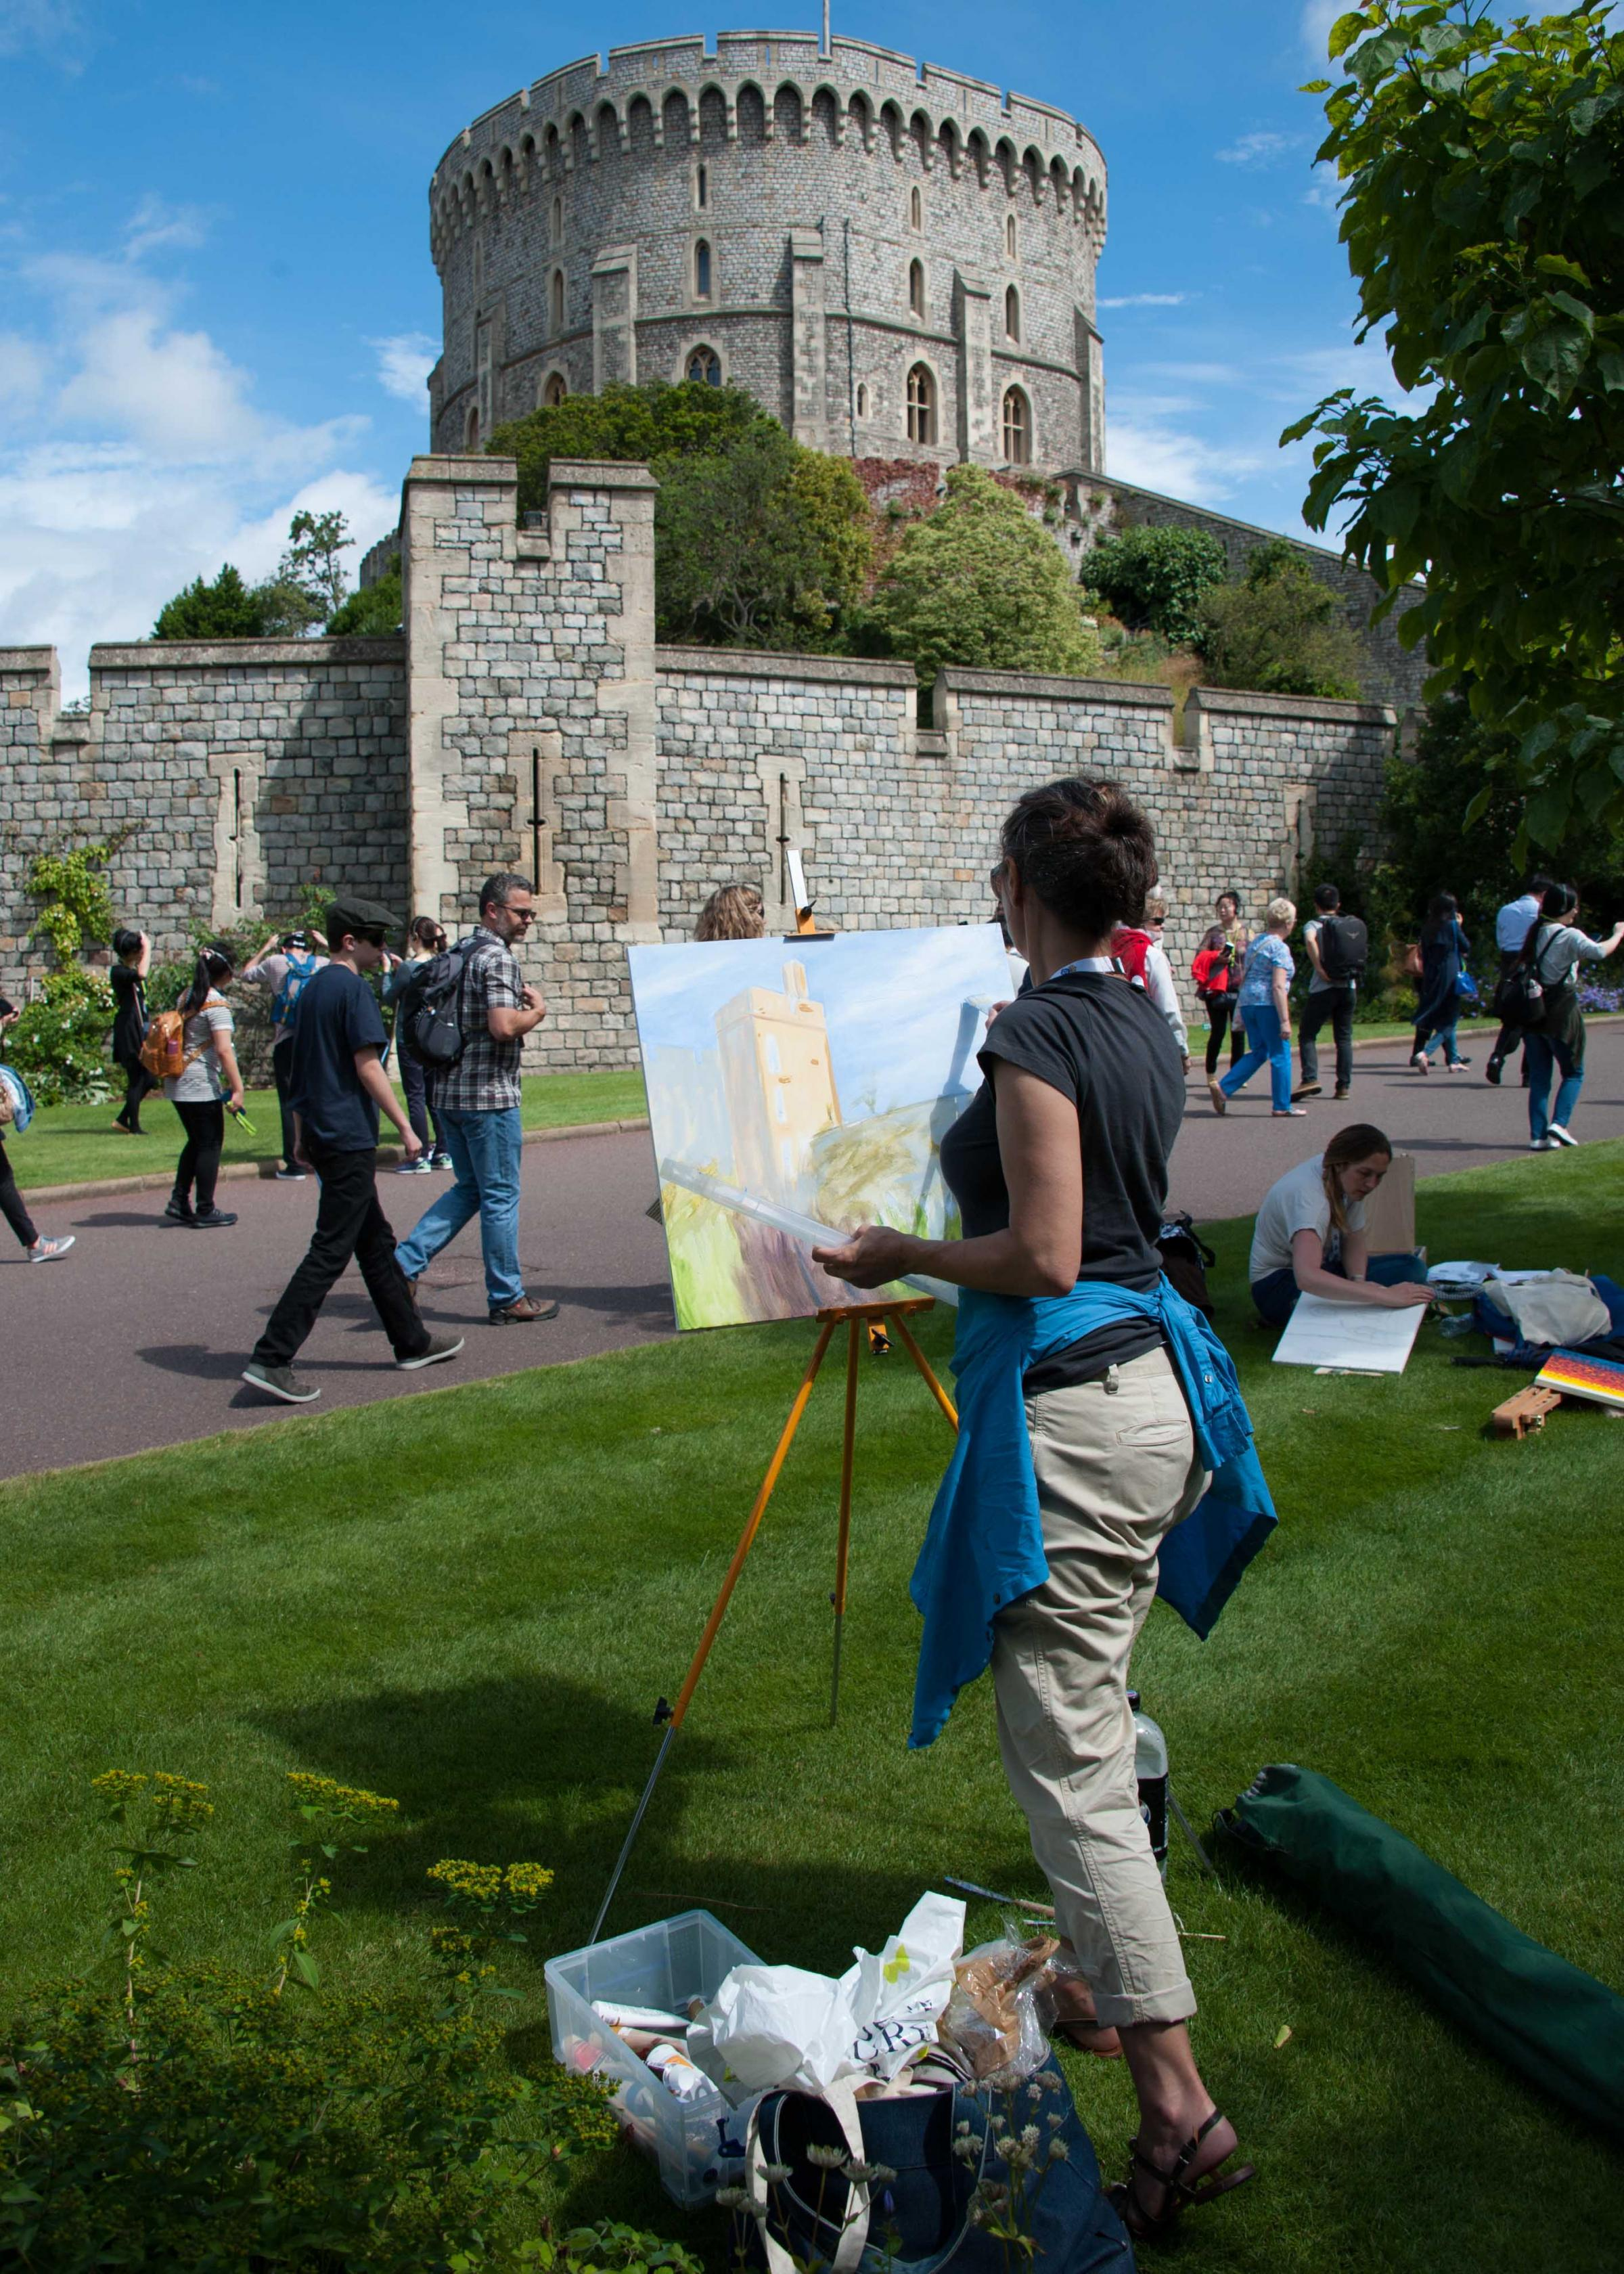 Sizing up the castle - picture by Gill Aspel